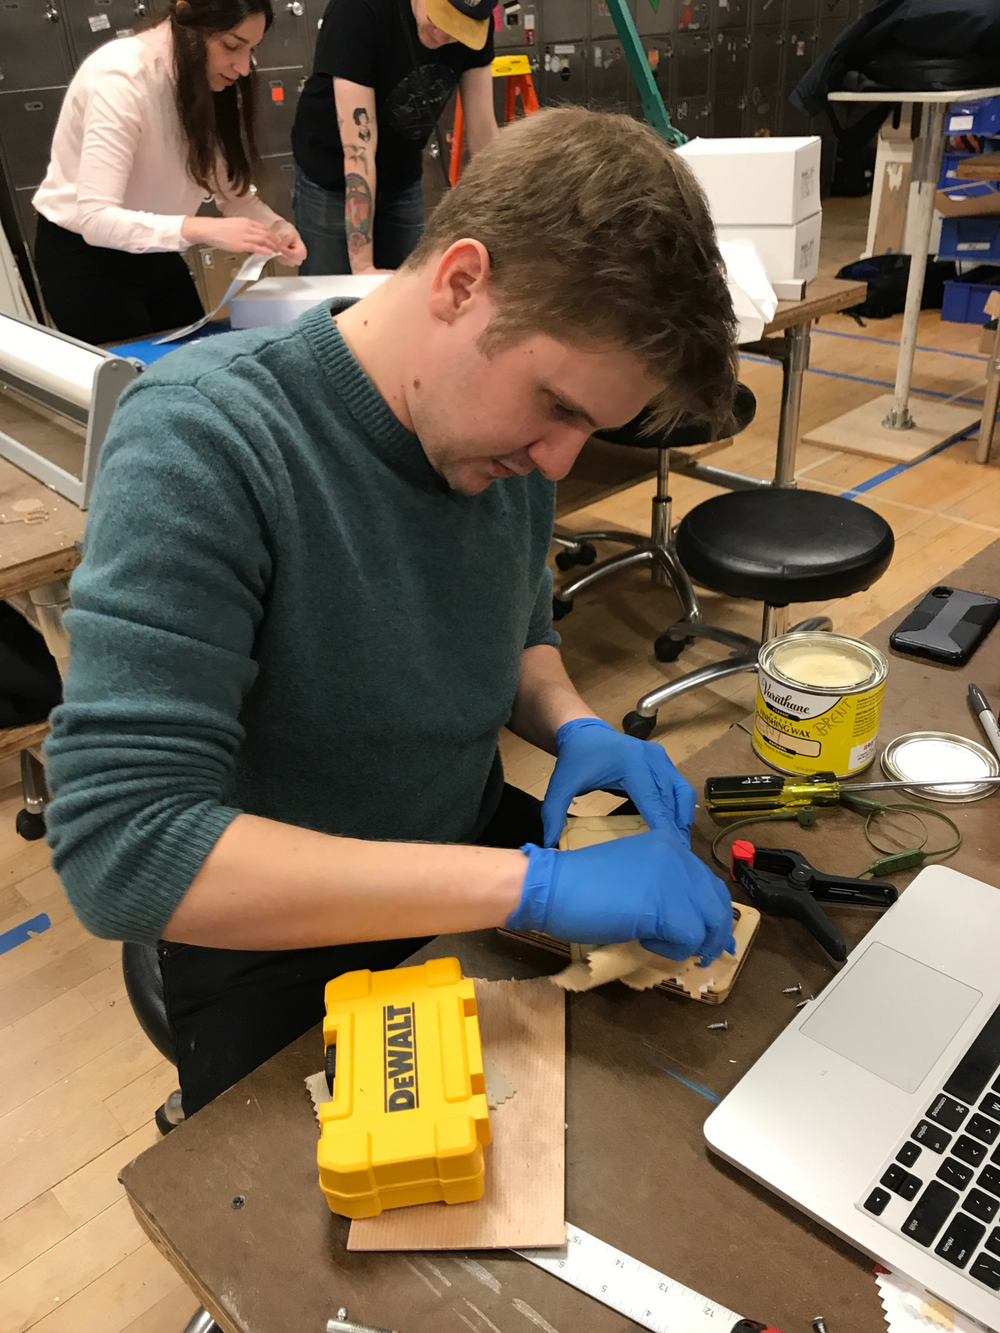 Brent applying wax to the case.